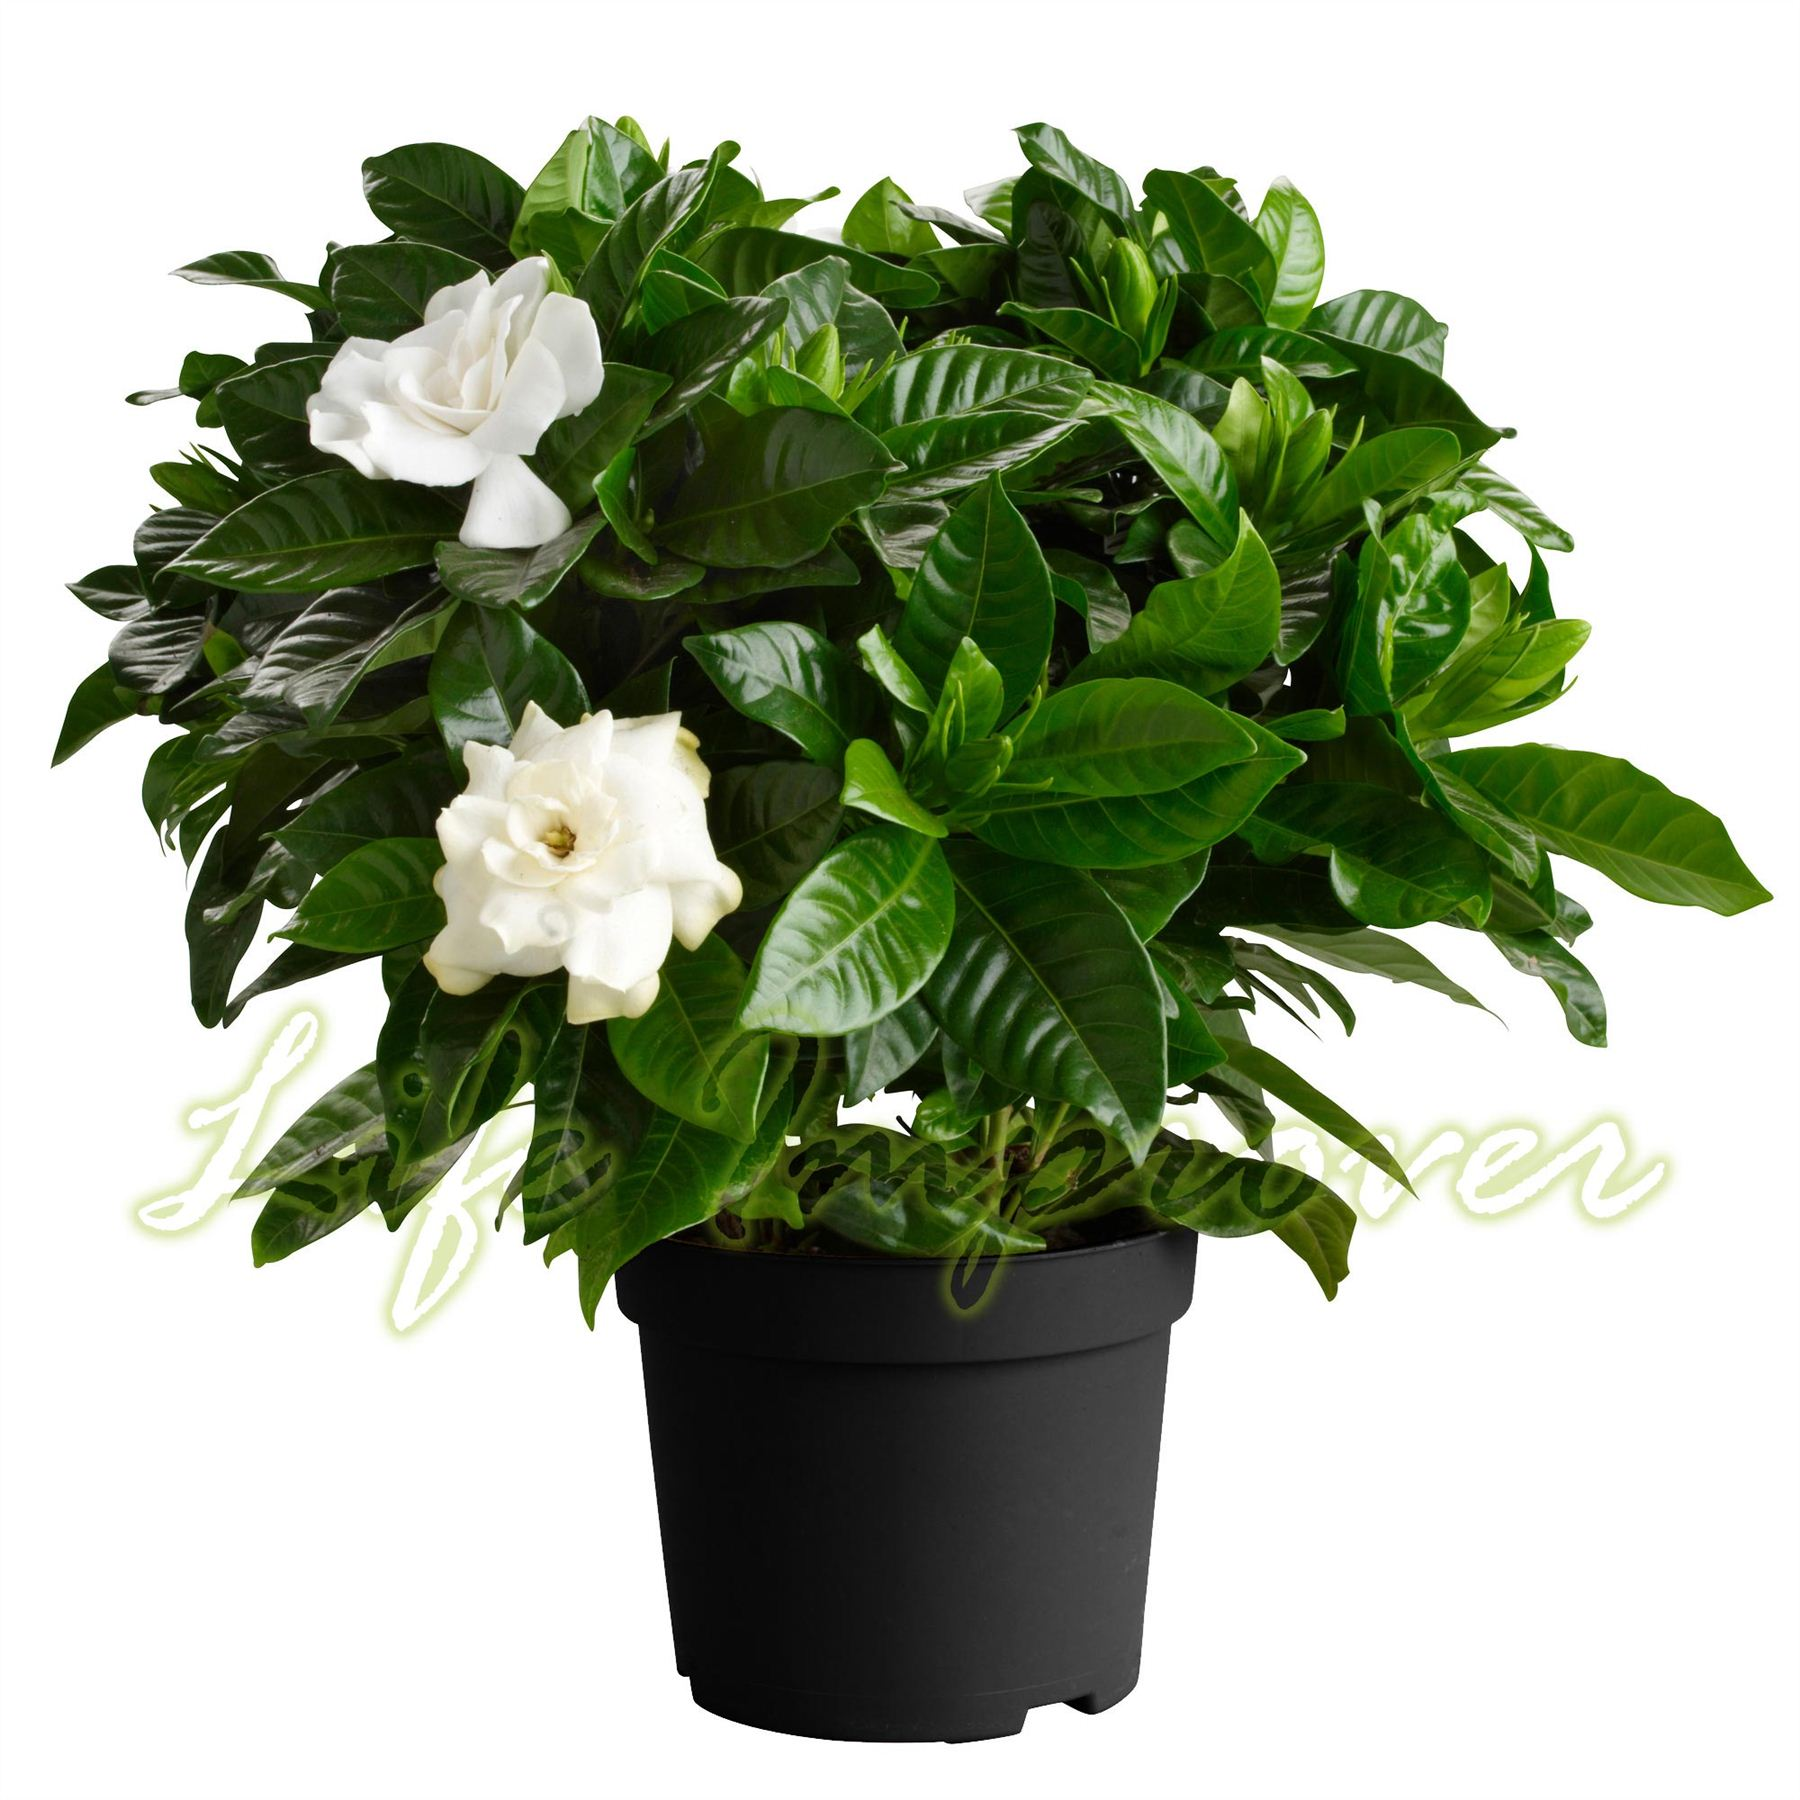 How to plant a gardenia - 1 Scented Fragrance Gardenia Jasmine Evergreen Indoorn House